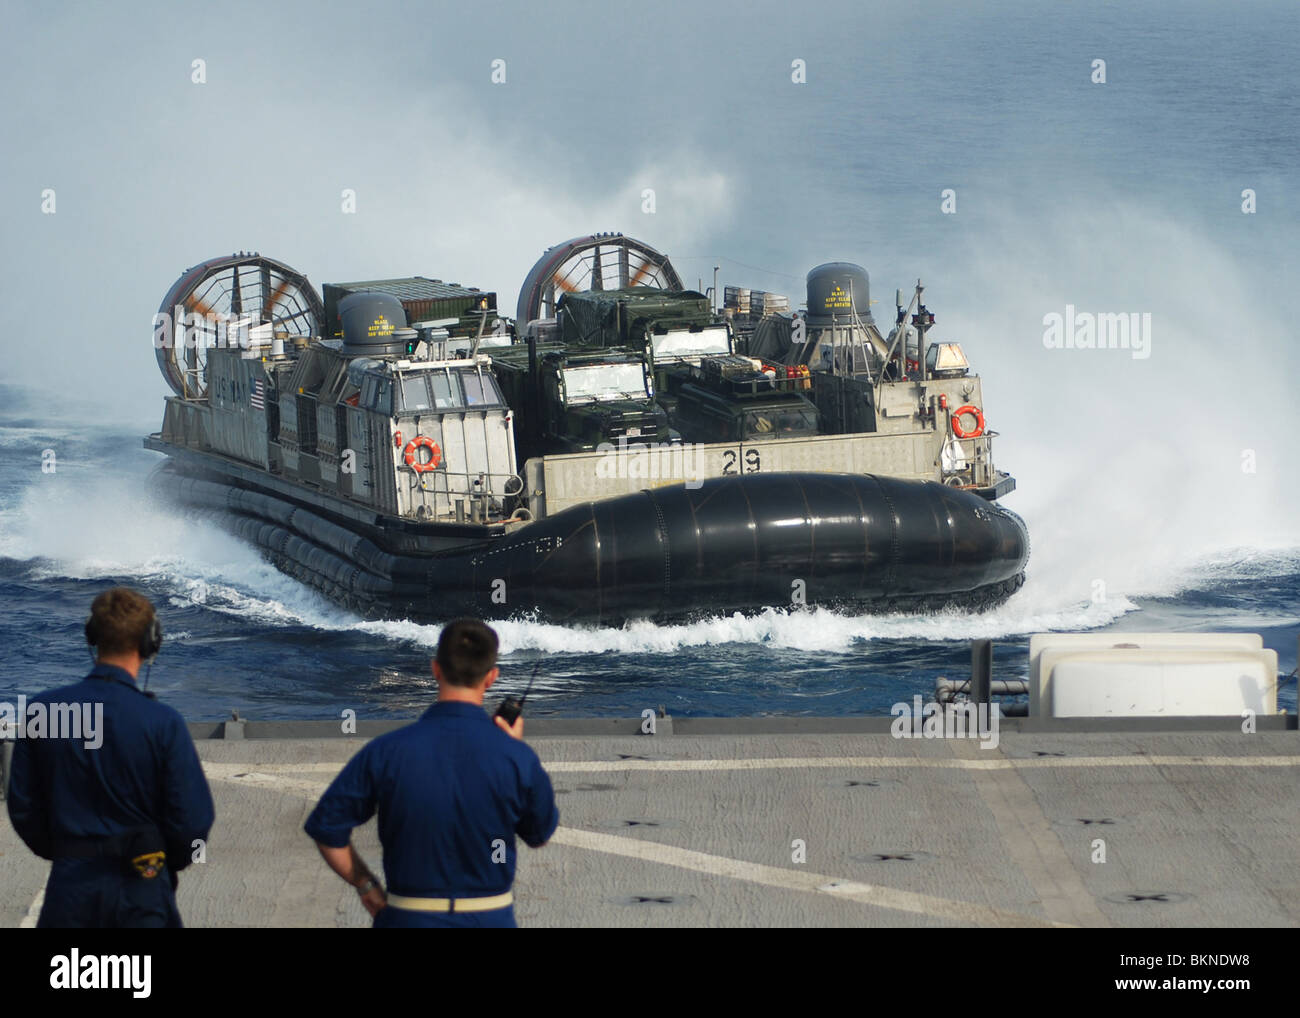 SEA OF JAPAN Sailors observe the Landing Craft Air Cushion (LCAC) 29 assigned to Assault Craft Unit (ACU) 5 - Stock Image